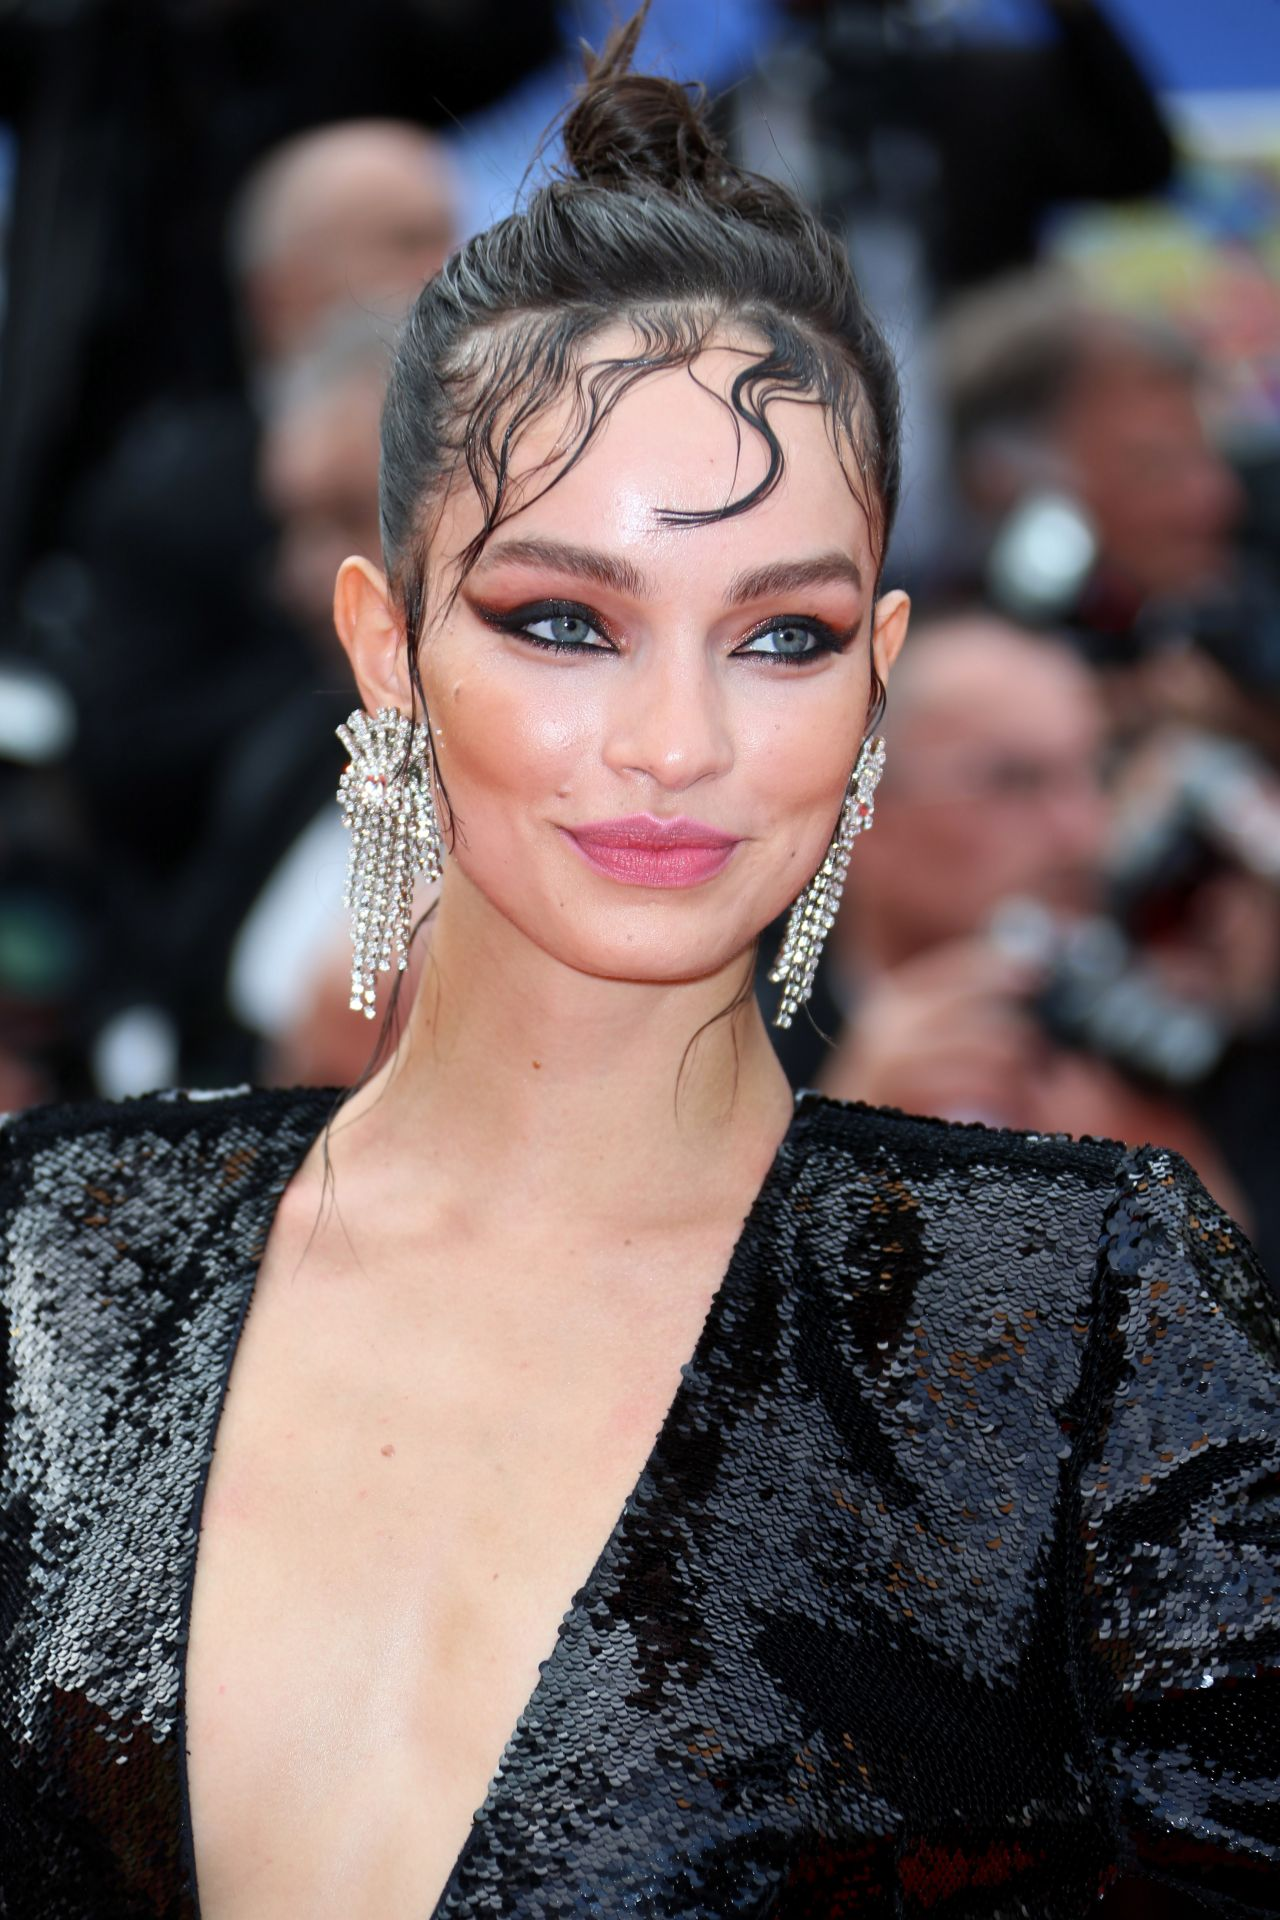 Amazing Beauty Luma Grothe - Luma Grothe Net Worth, Pics, Wallpapers, Career and Biography